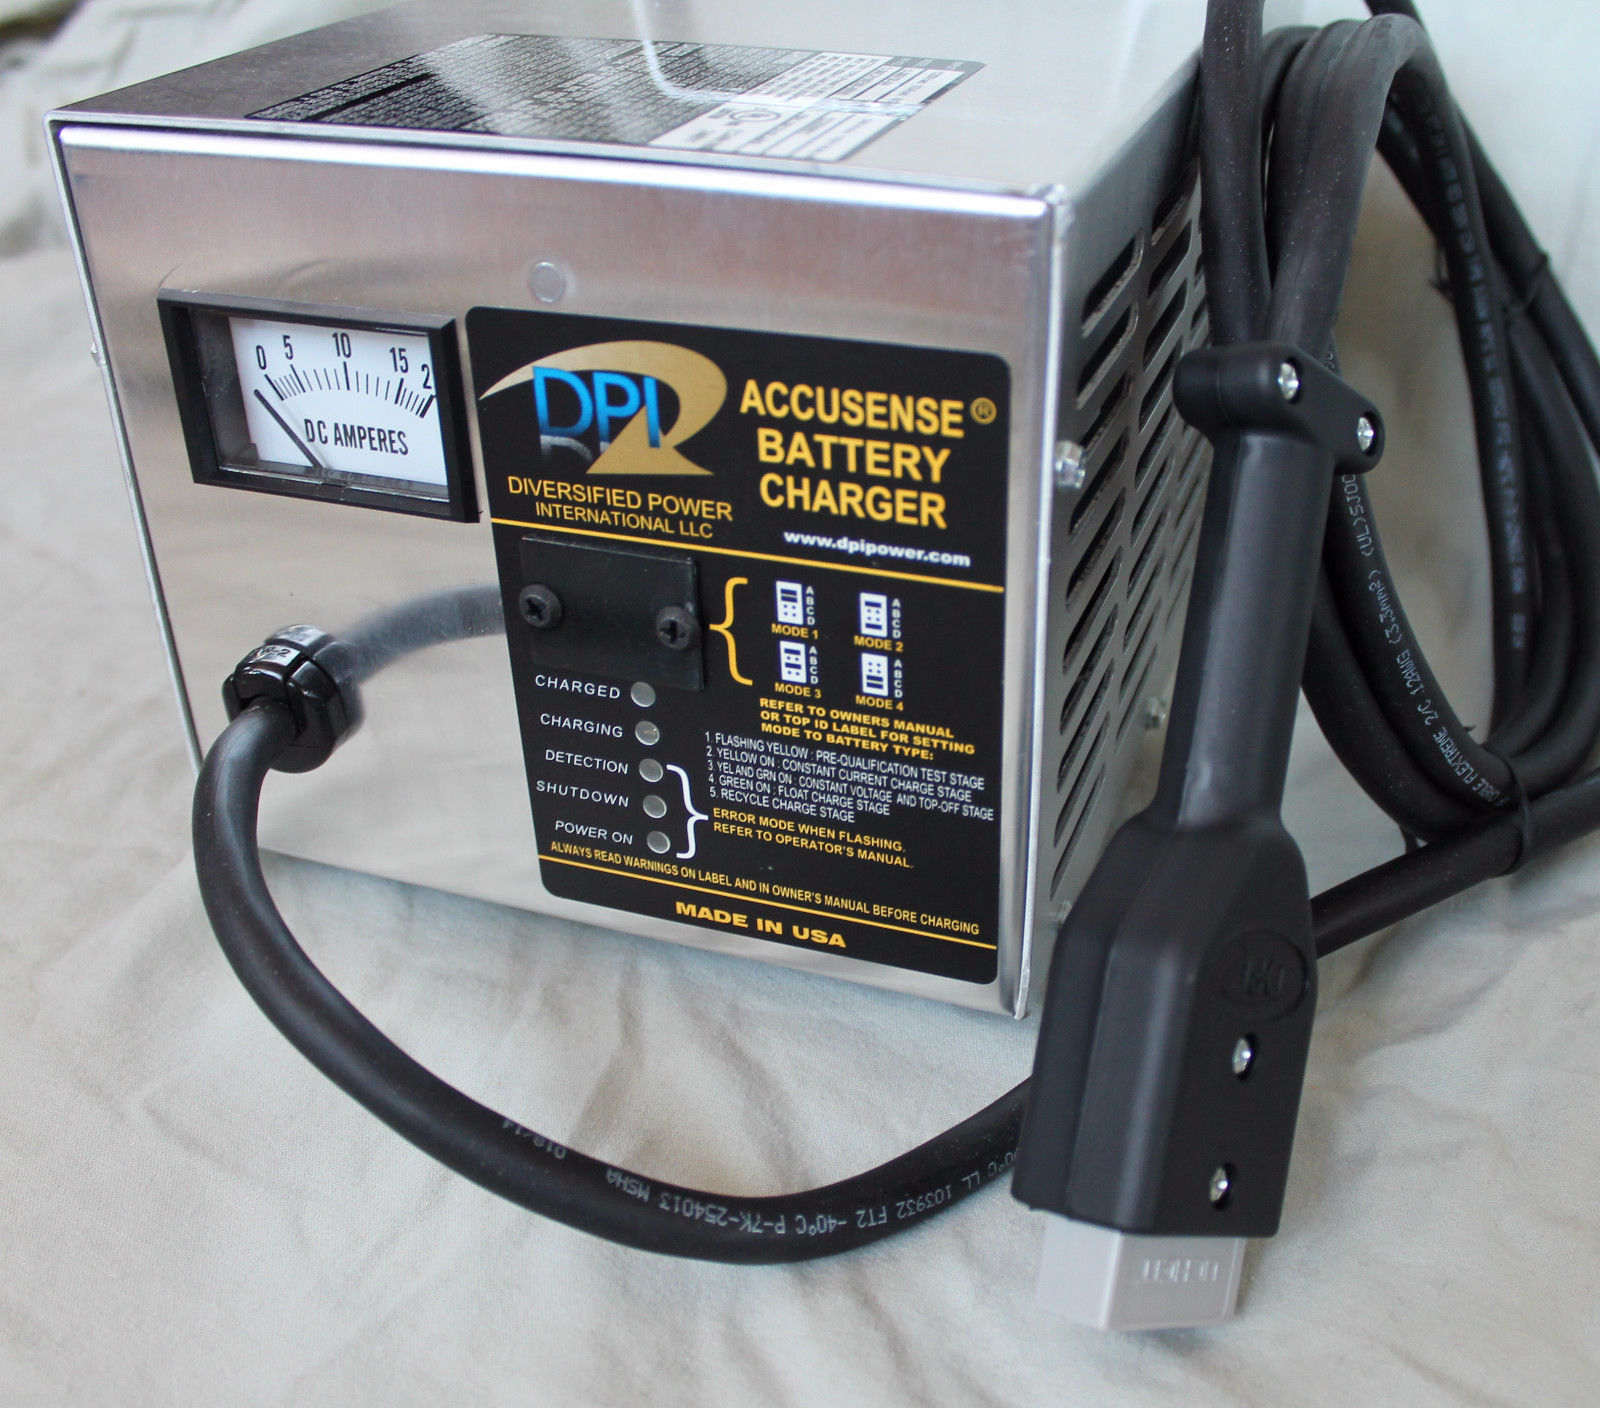 Battery Wiring Diagram On Cart Charger Plug Powerwise Wiring Diagram